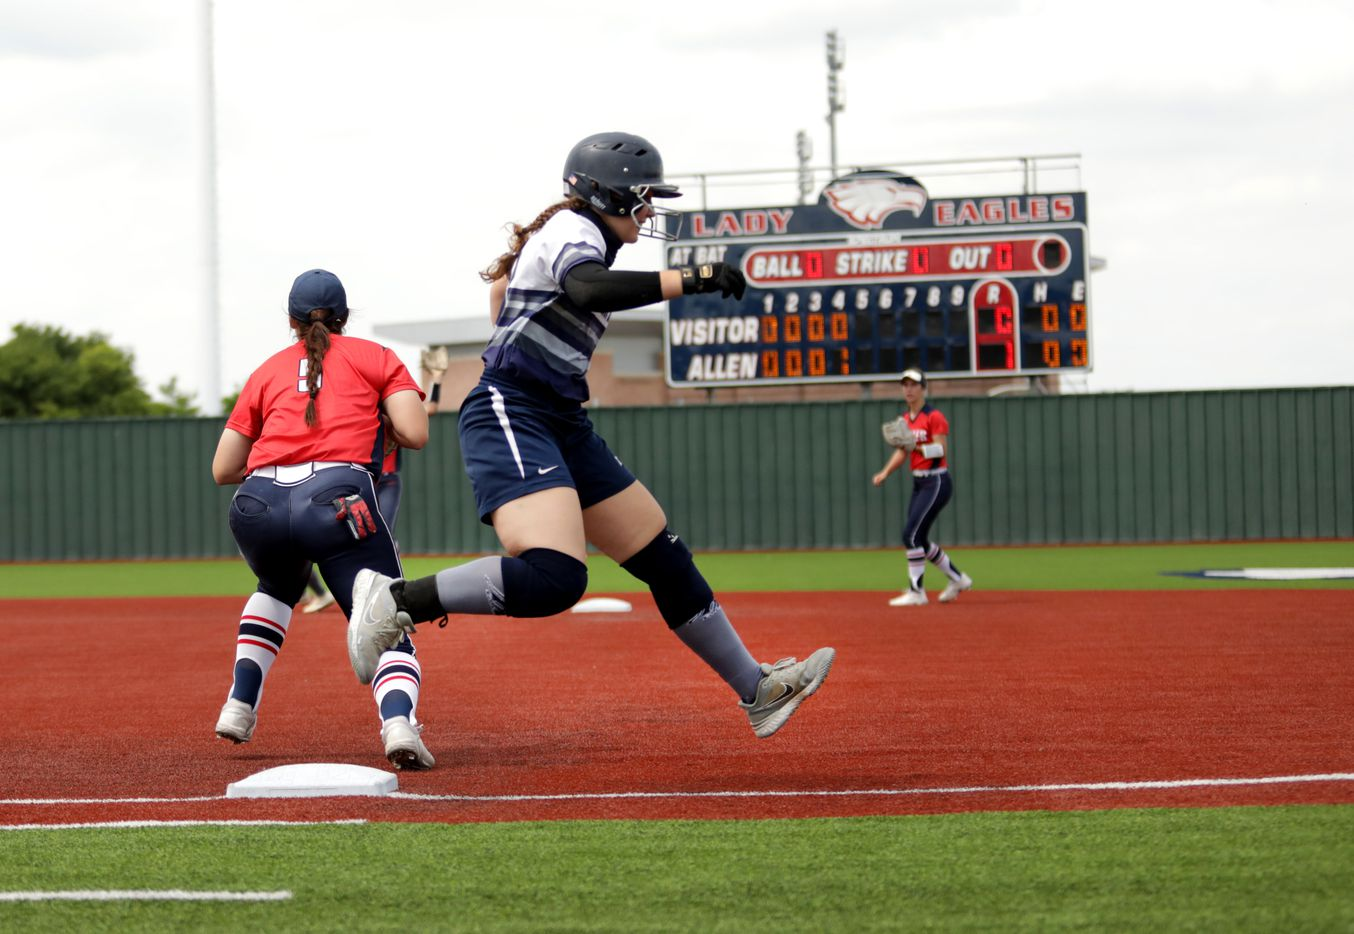 Flower Mound High School player #20, Katie Cantrell, runs past first base during a softball game against Allen High School at Allen High School in Allen, TX, on May 15, 2021. (Jason Janik/Special Contributor)